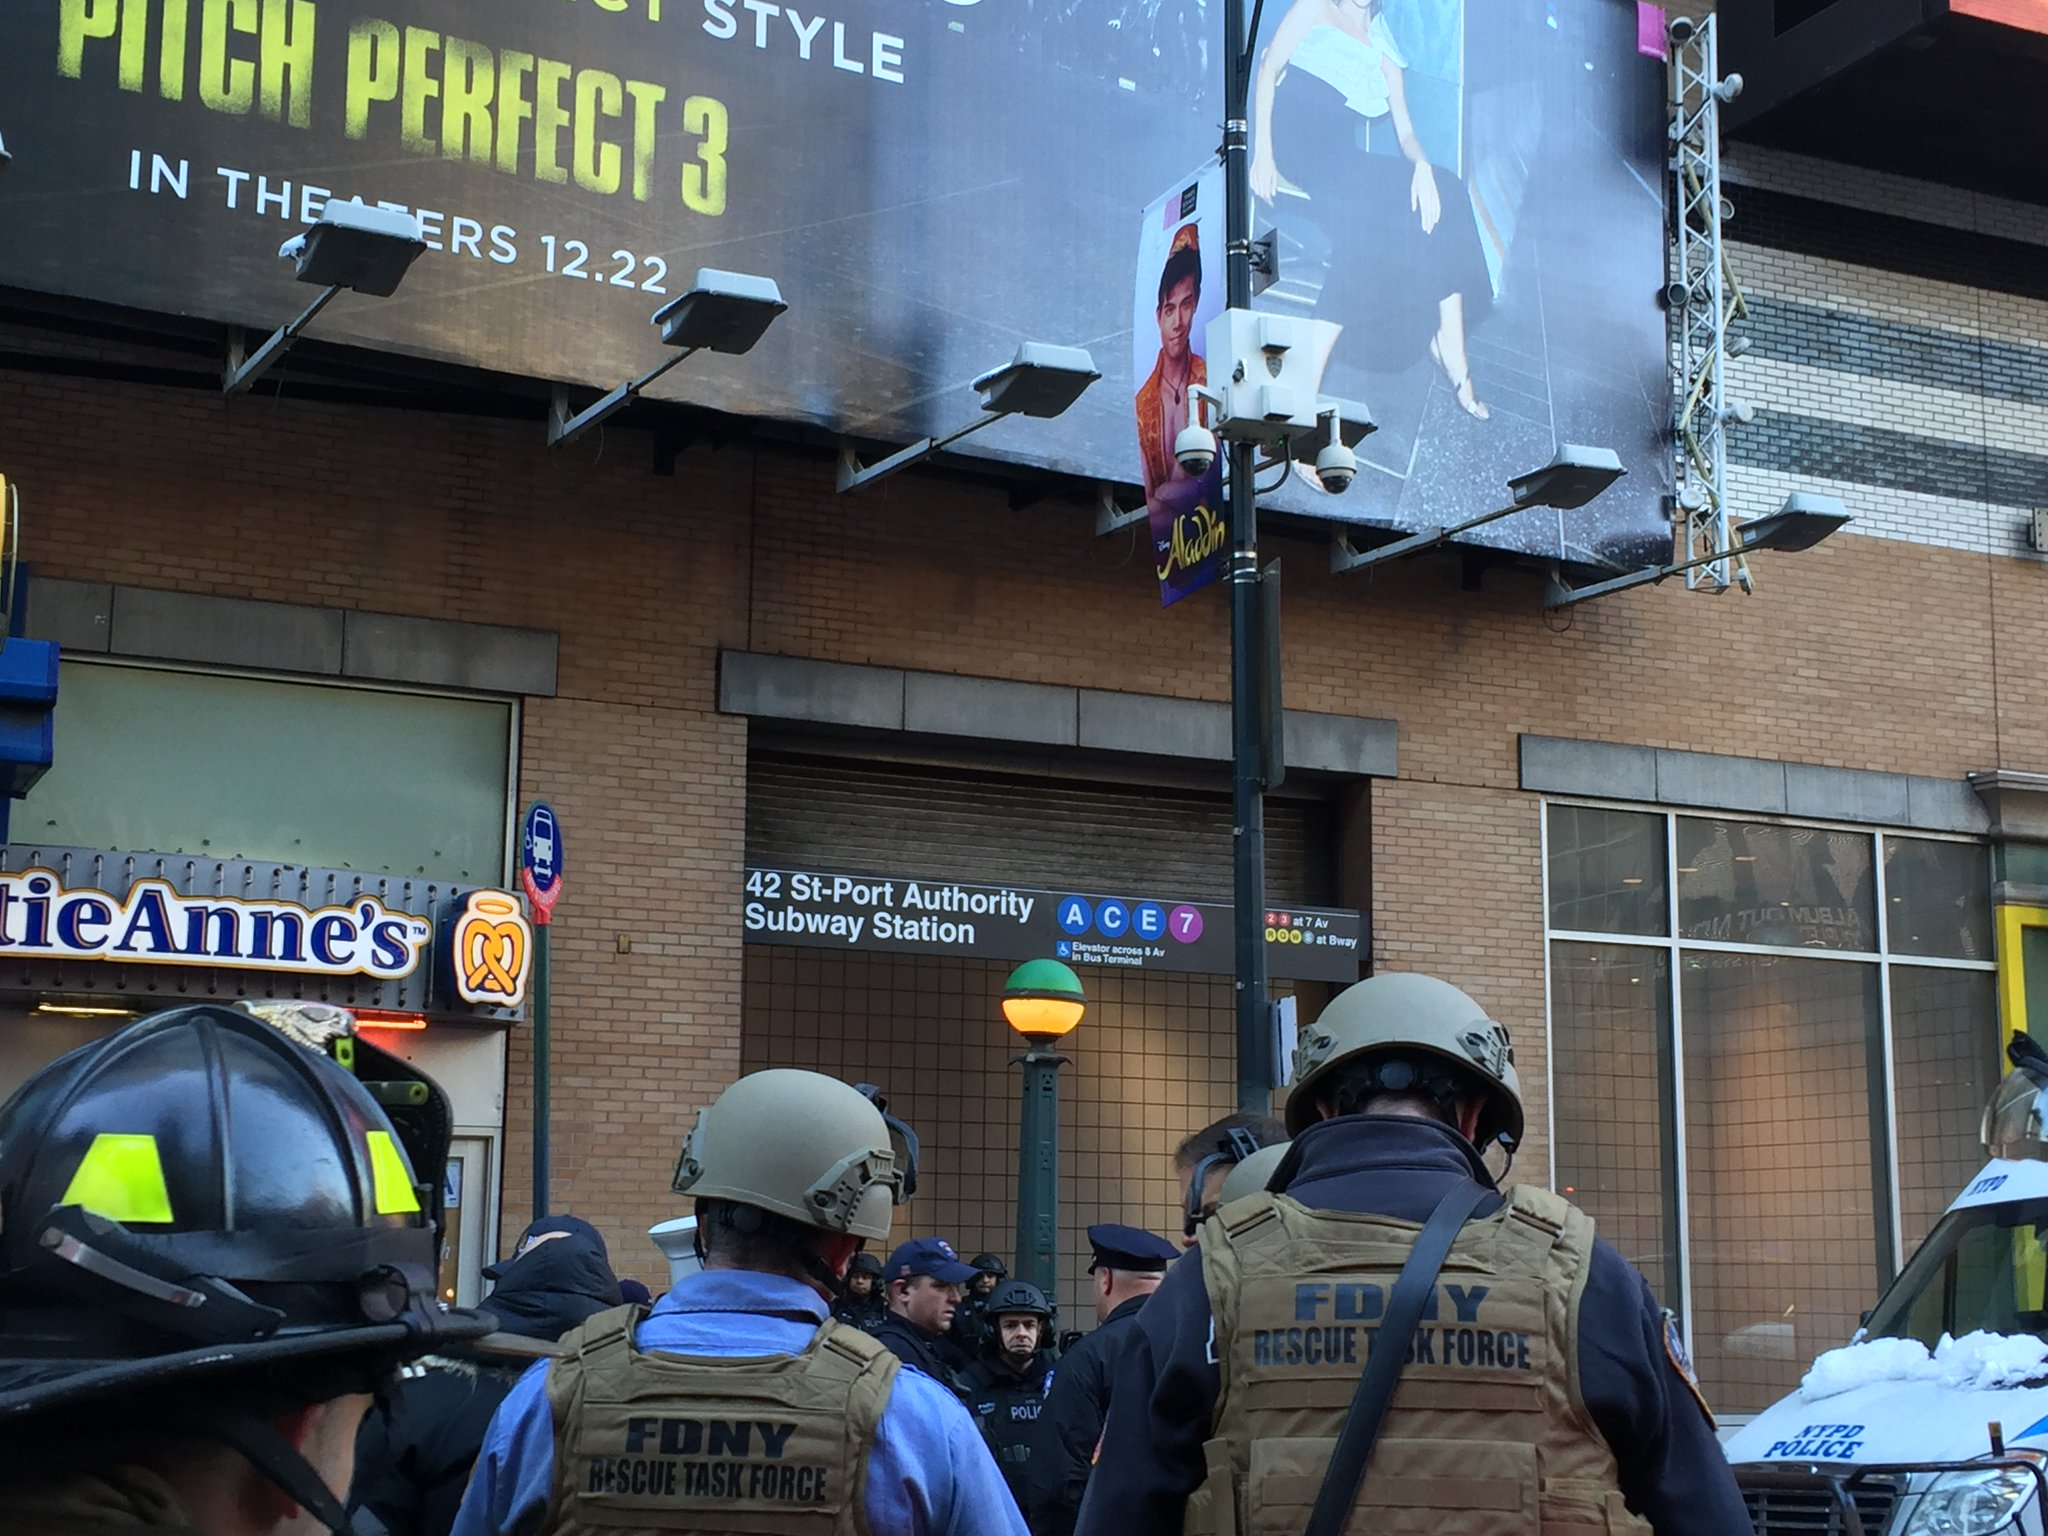 "<div class=""meta image-caption""><div class=""origin-logo origin-image wabc""><span>WABC</span></div><span class=""caption-text"">Photos from the scene of a pipe bomb explosion at the Port Authority Bus Terminal in Manhattan, New York City. (FDNY via Twitter)</span></div>"